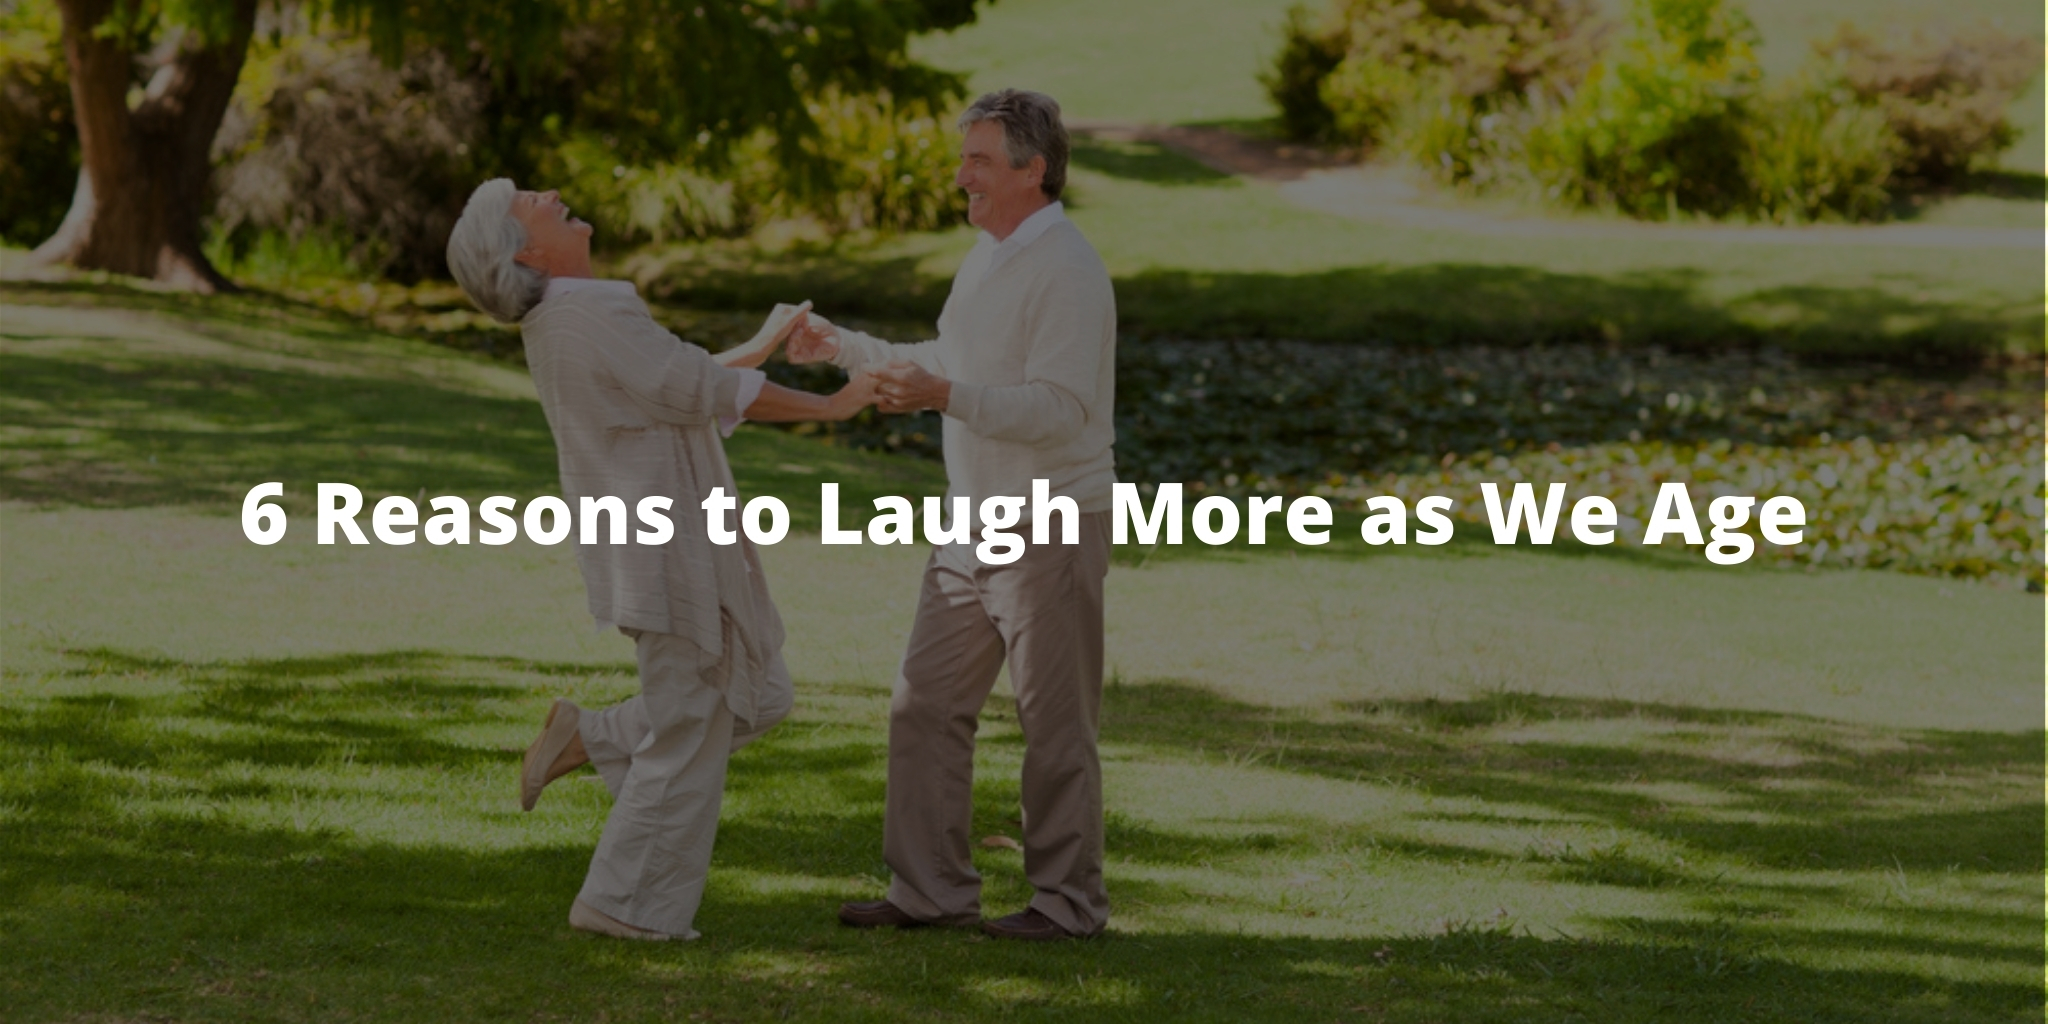 6 Reasons to Laugh More as We Age